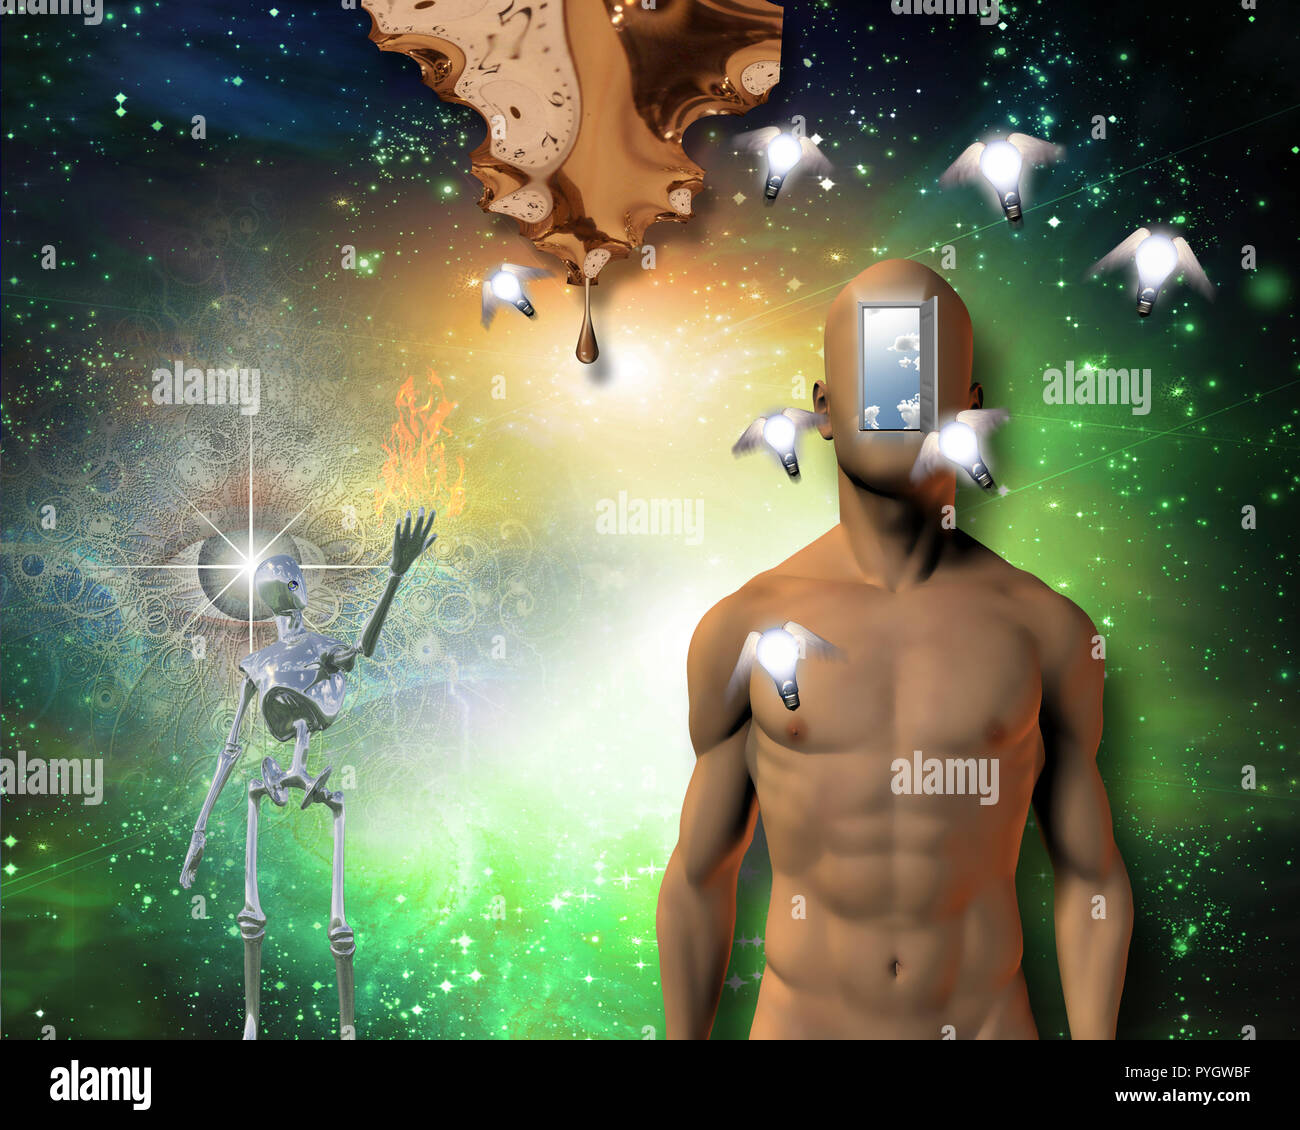 Man with open door in face, warped time drips, gleaming robot, and watchful eye. Winged light bulbs represents flow of time - Stock Image